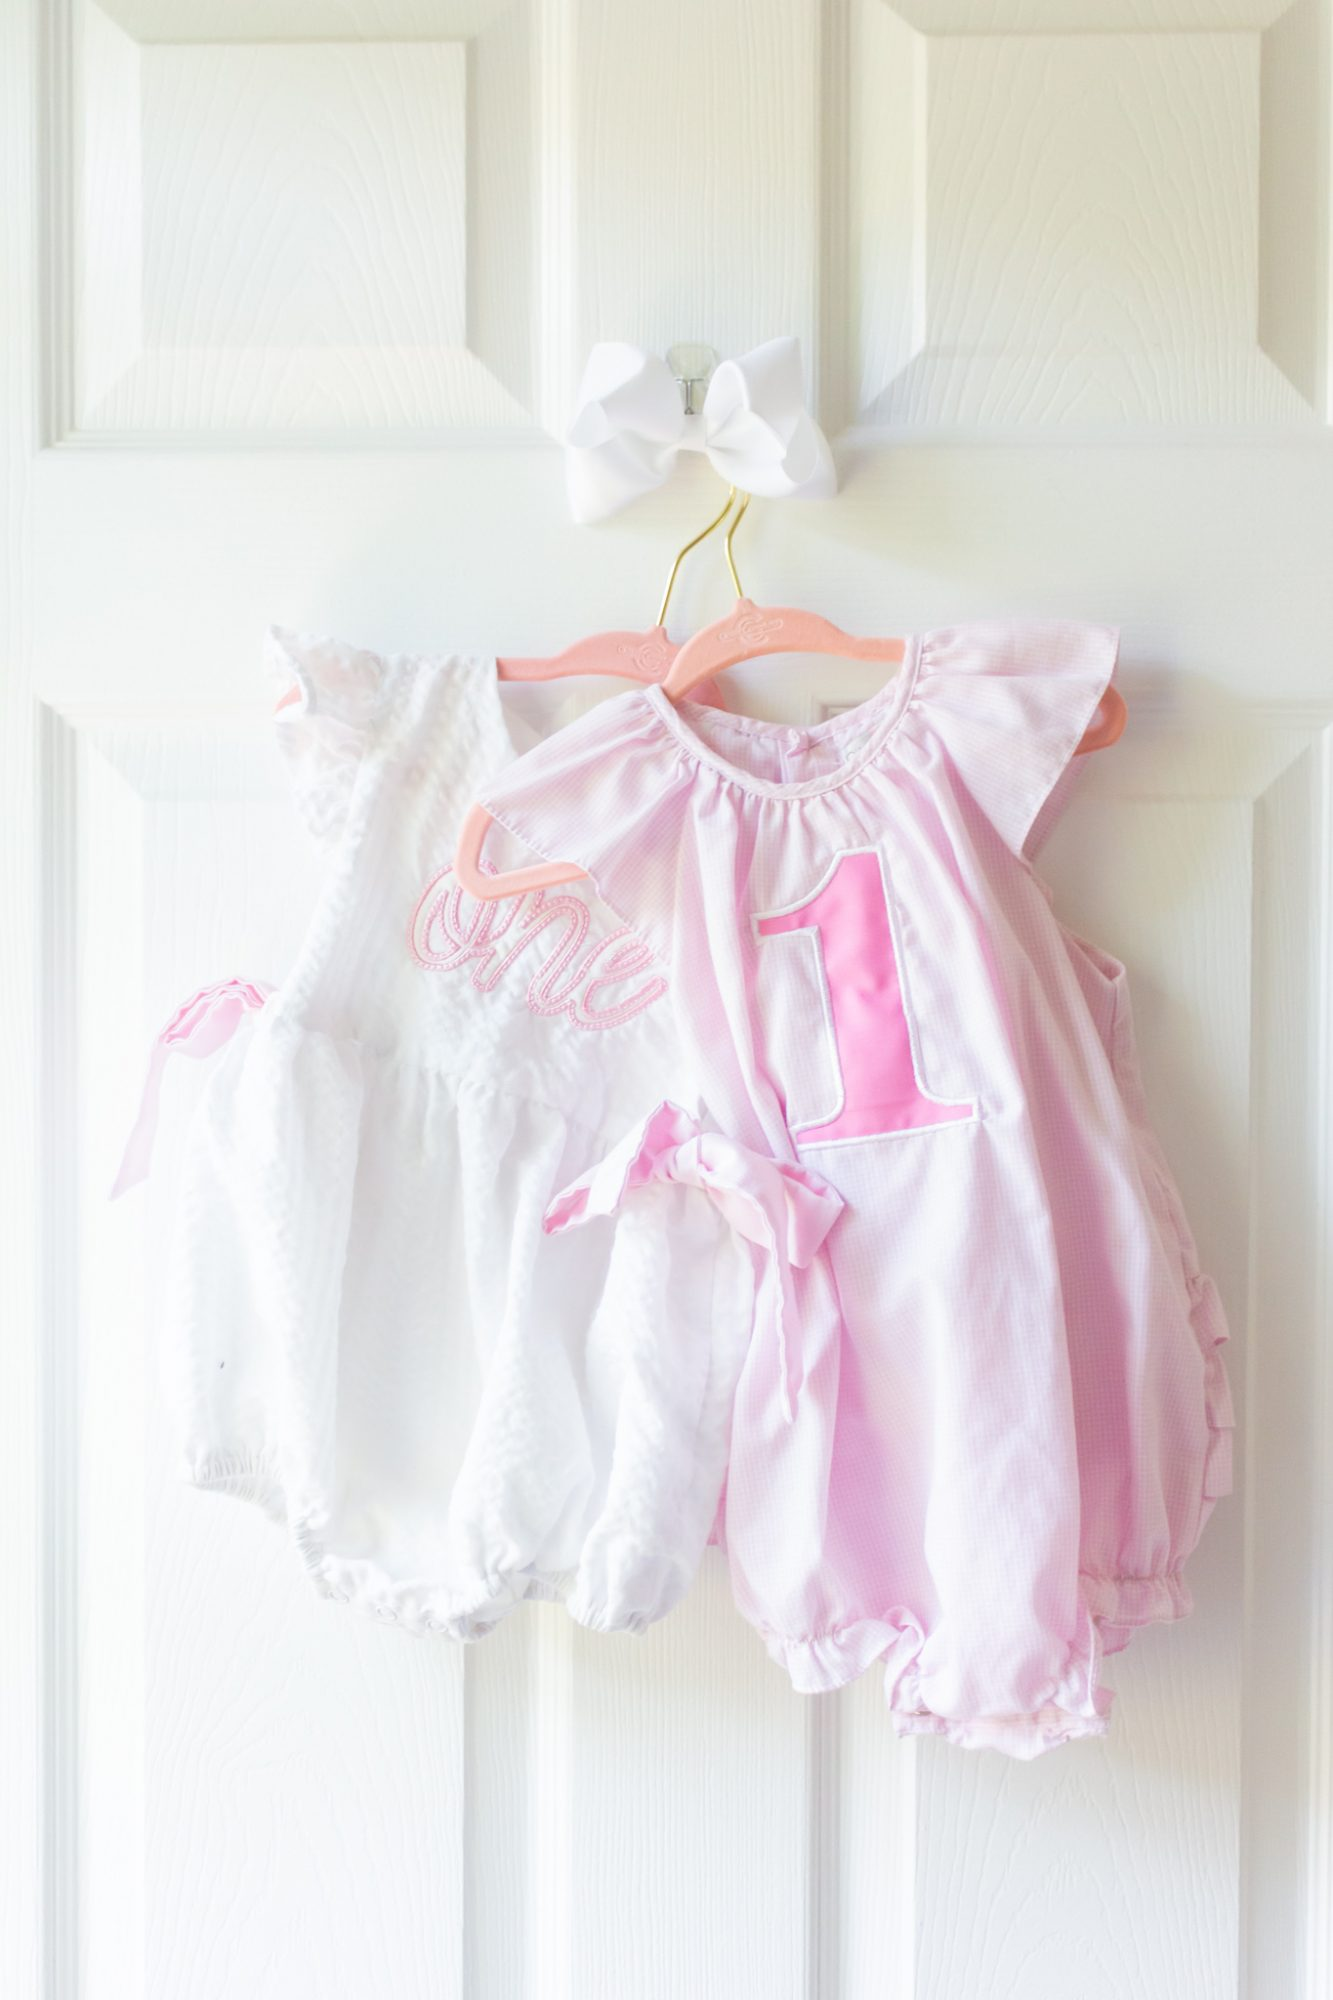 dresses for baby Claire's virtual birthday cake smash